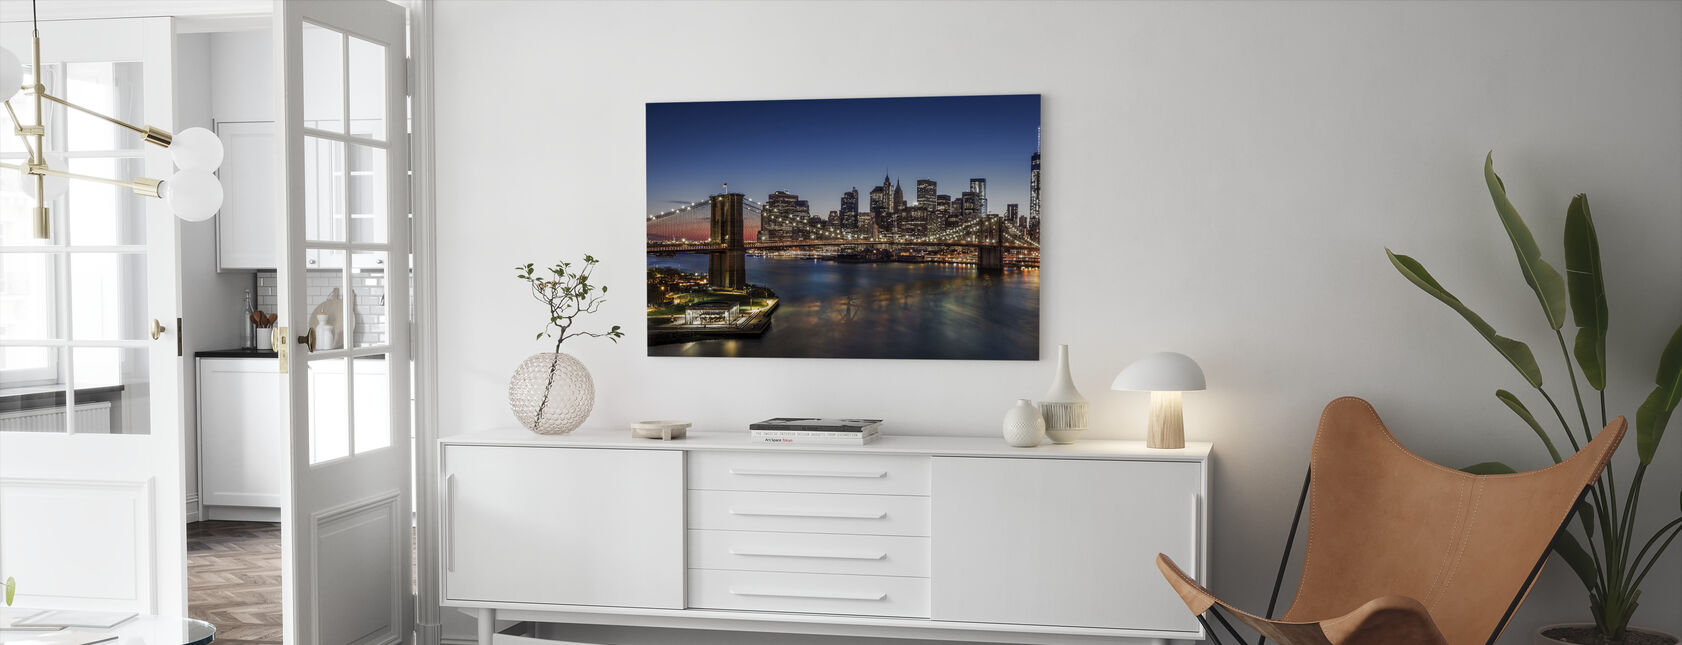 Brooklyn Bridge and Downtown Manhattan - Canvas print - Living Room